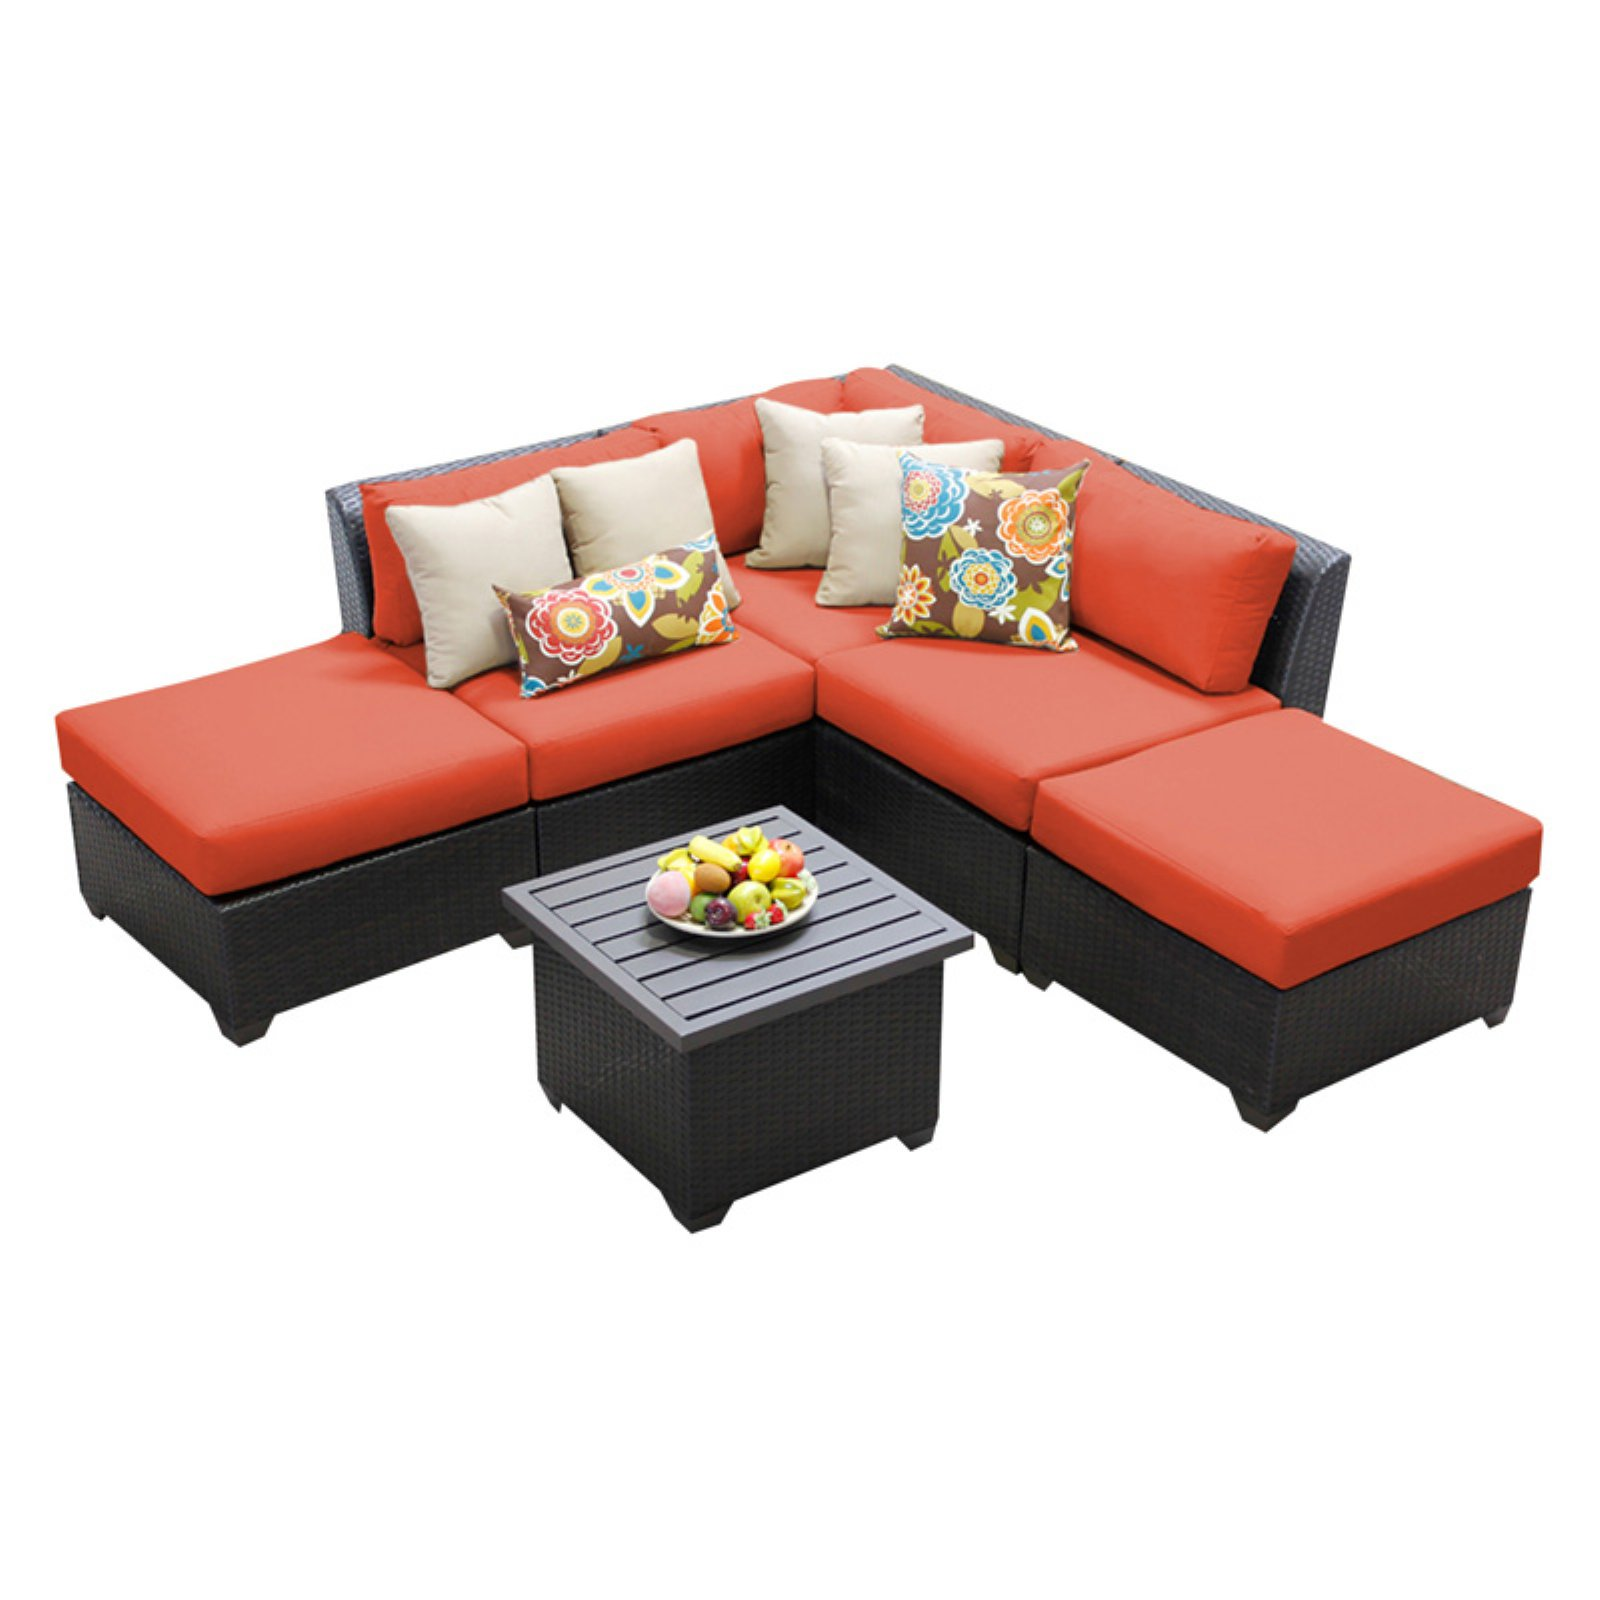 TK Classics Barbados Wicker 6 Piece Patio Conversation Set with End Table and 2 Sets of Cushion Covers